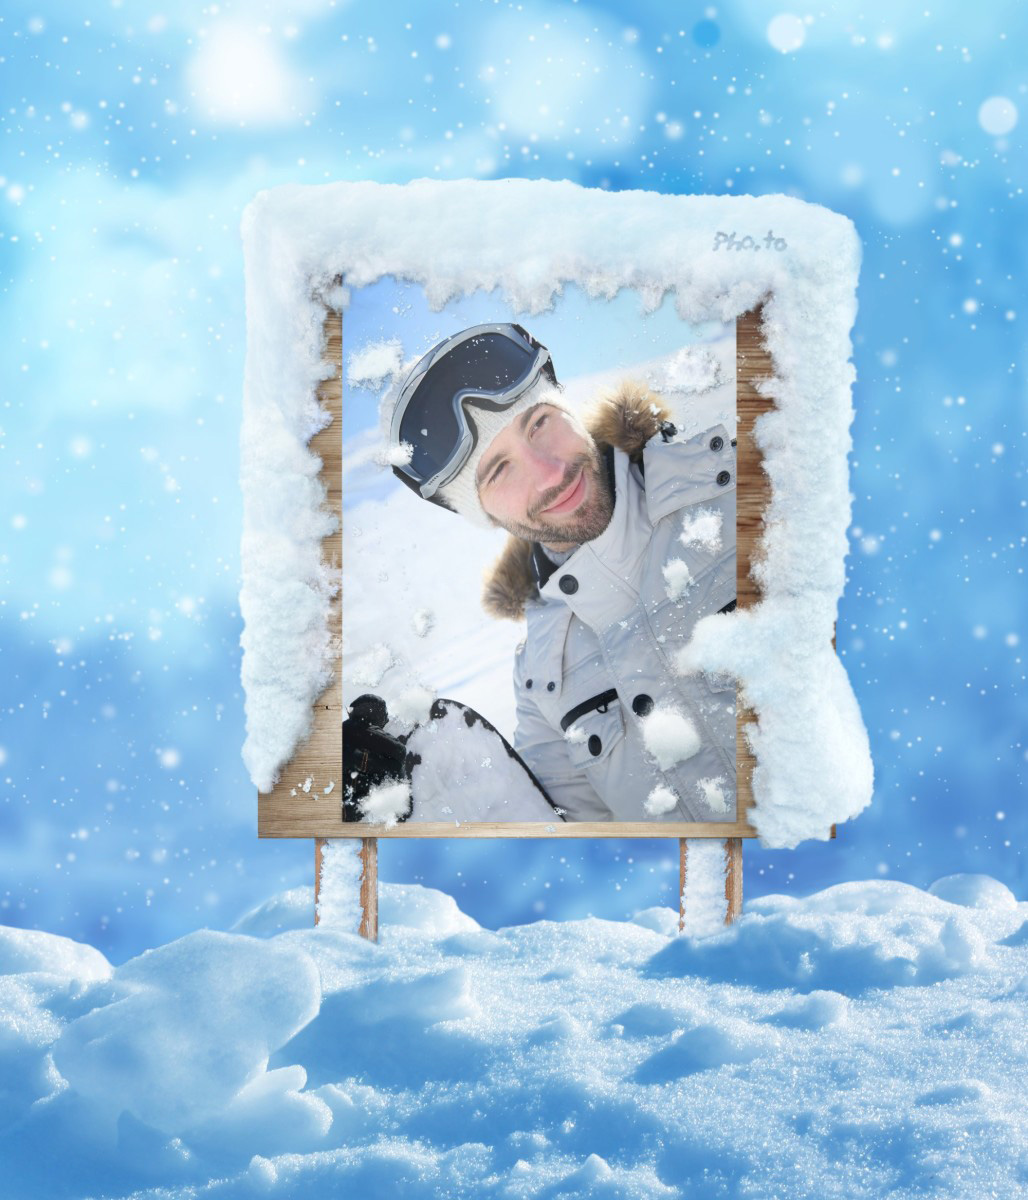 Winter photo frame for snowy photos